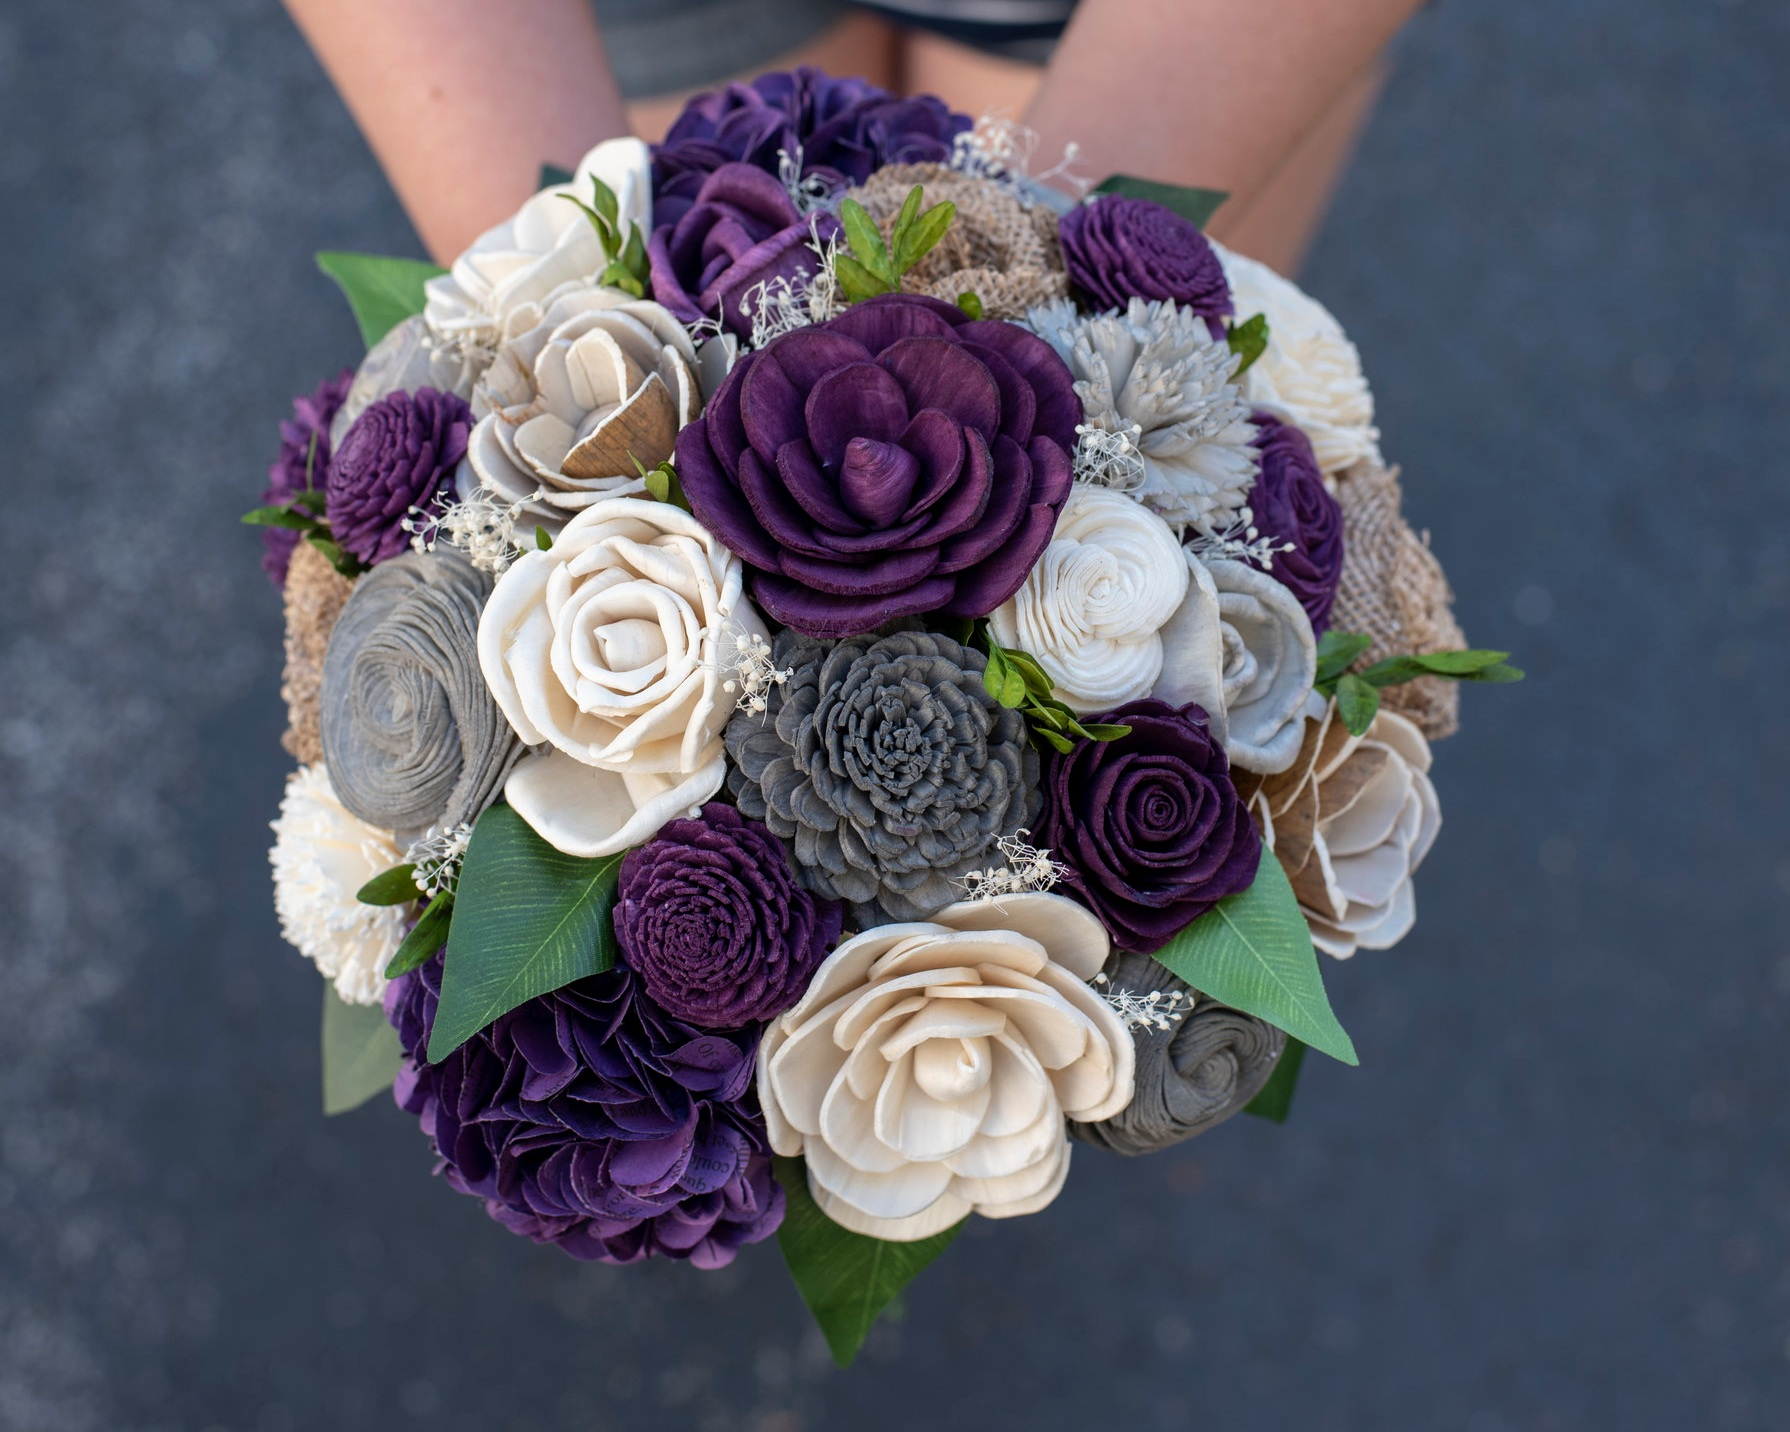 Purple%2C+White+and+Burlap+Bridal+Bouquet-redo+1.jpg